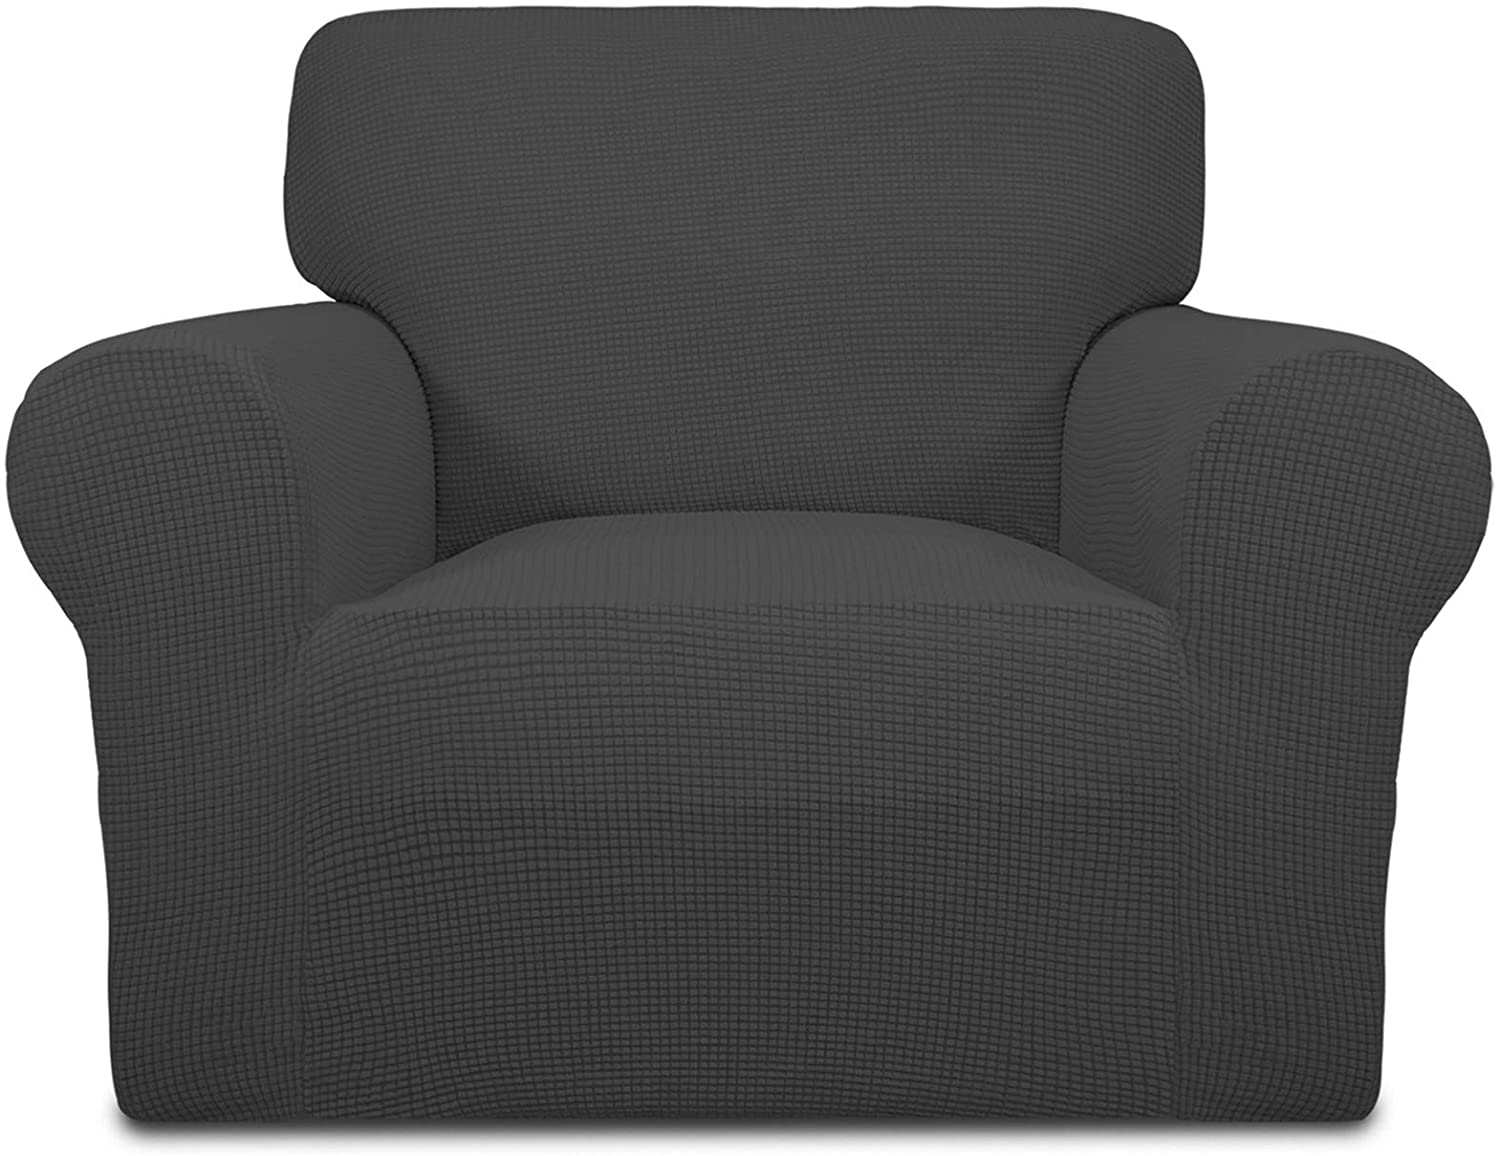 Easy-Going Stretch Oversized Chair Sofa Slipcover 1-Piece Couch Sofa Cover Furniture Protector Soft with Elastic Bottom for Kids Spandex Jacquard Fabric Small Checks Dark Gray